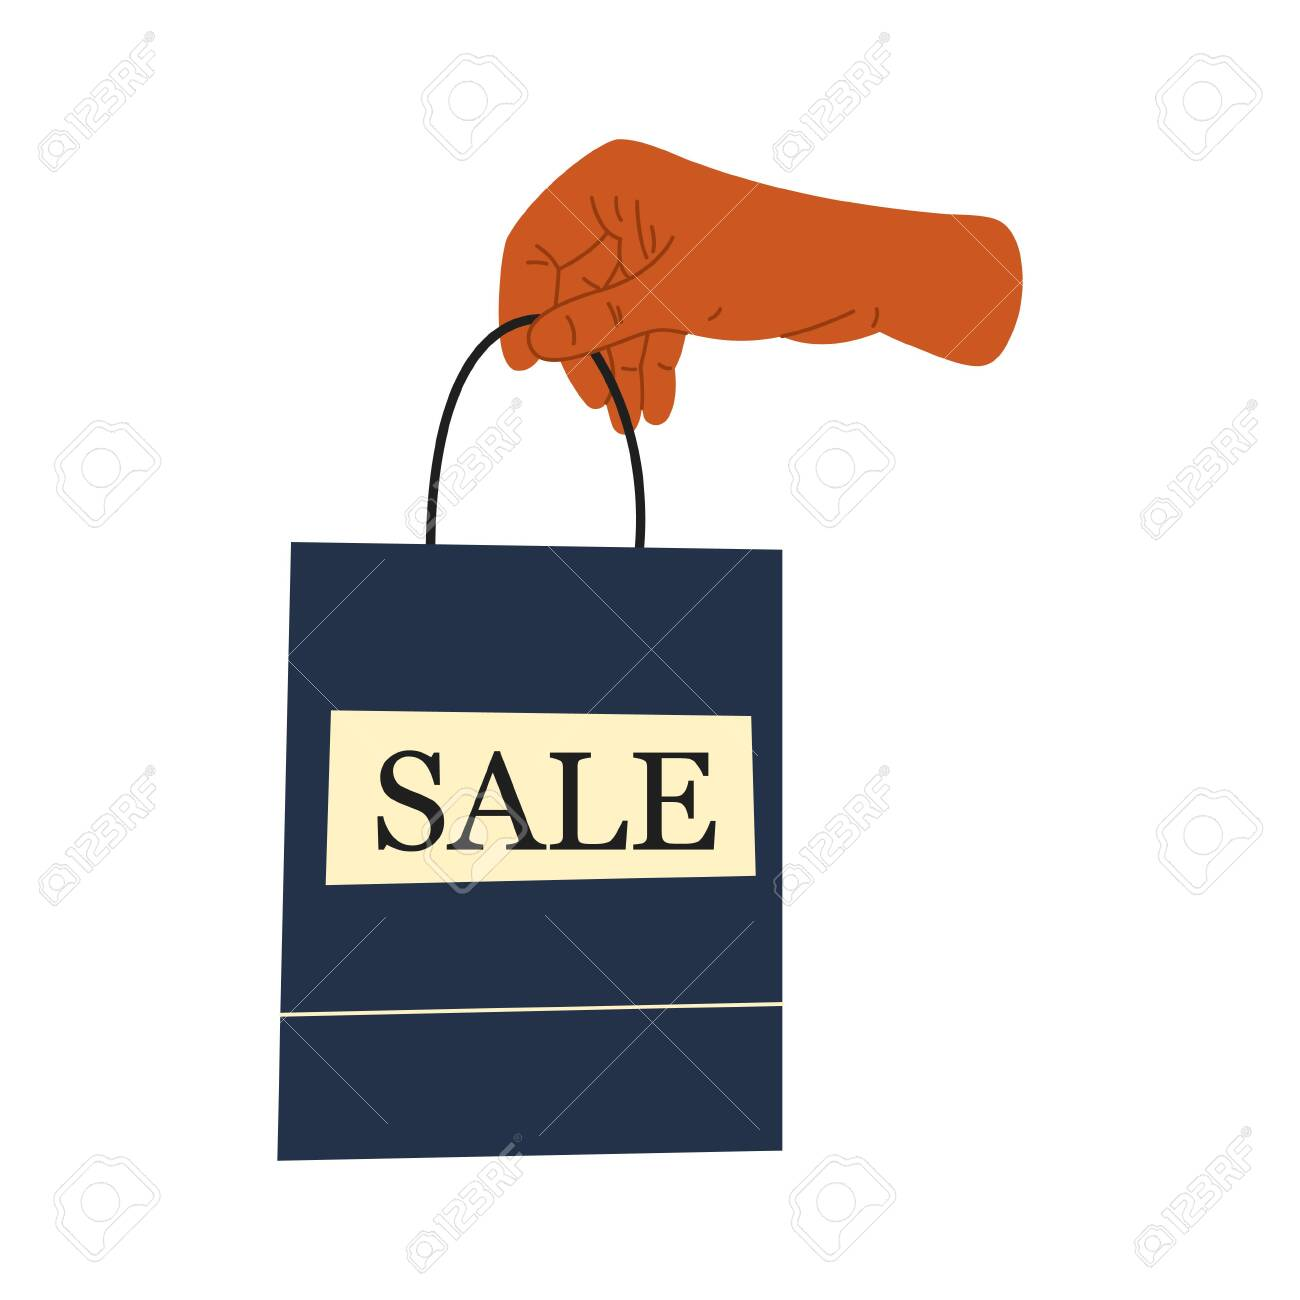 Female hand holds shopping or gifts. Sale sign. Shopping bag, gifts. Hand drawn vector illustration. Shopping, discounts, sale concept - 146990846